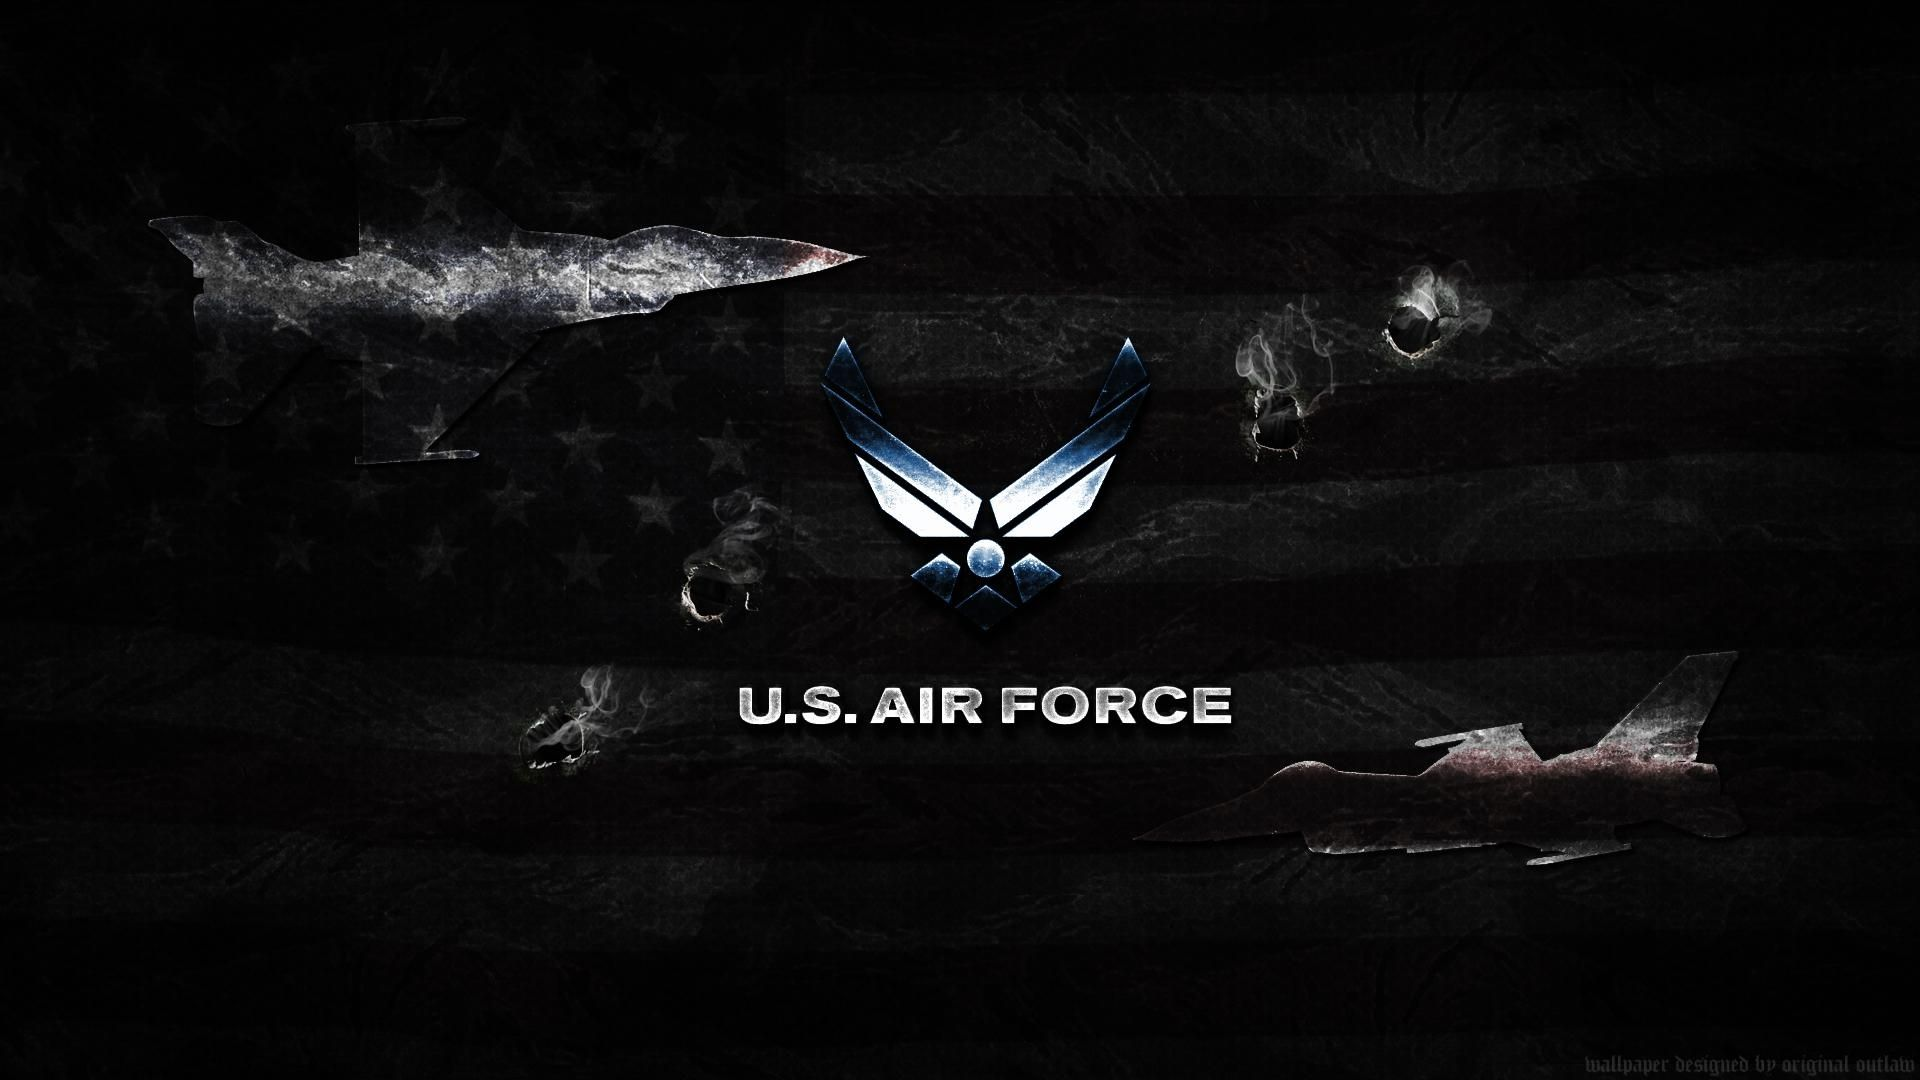 10 Best Air Force Desktop Backgrounds Full Hd 1920 1080 For Pc